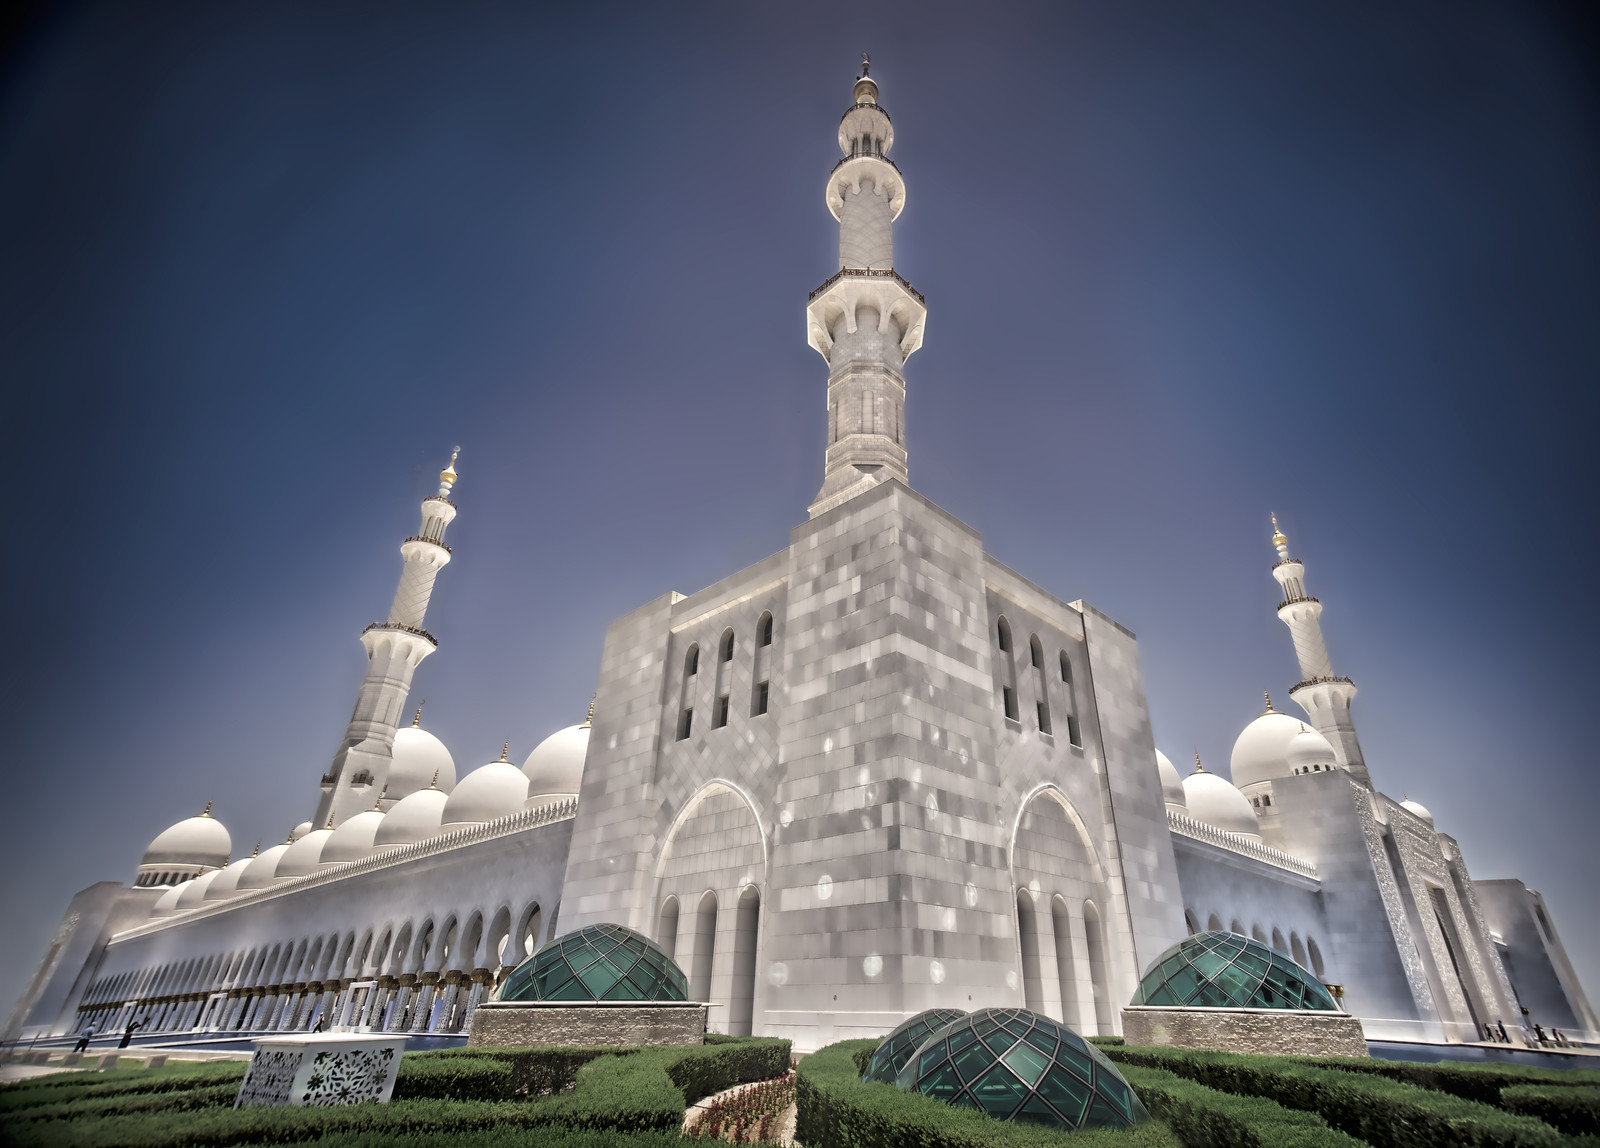 Grand Mosque,United Arab Emirates,Abu Dhabi,Travel,Explore,Photography,UAE